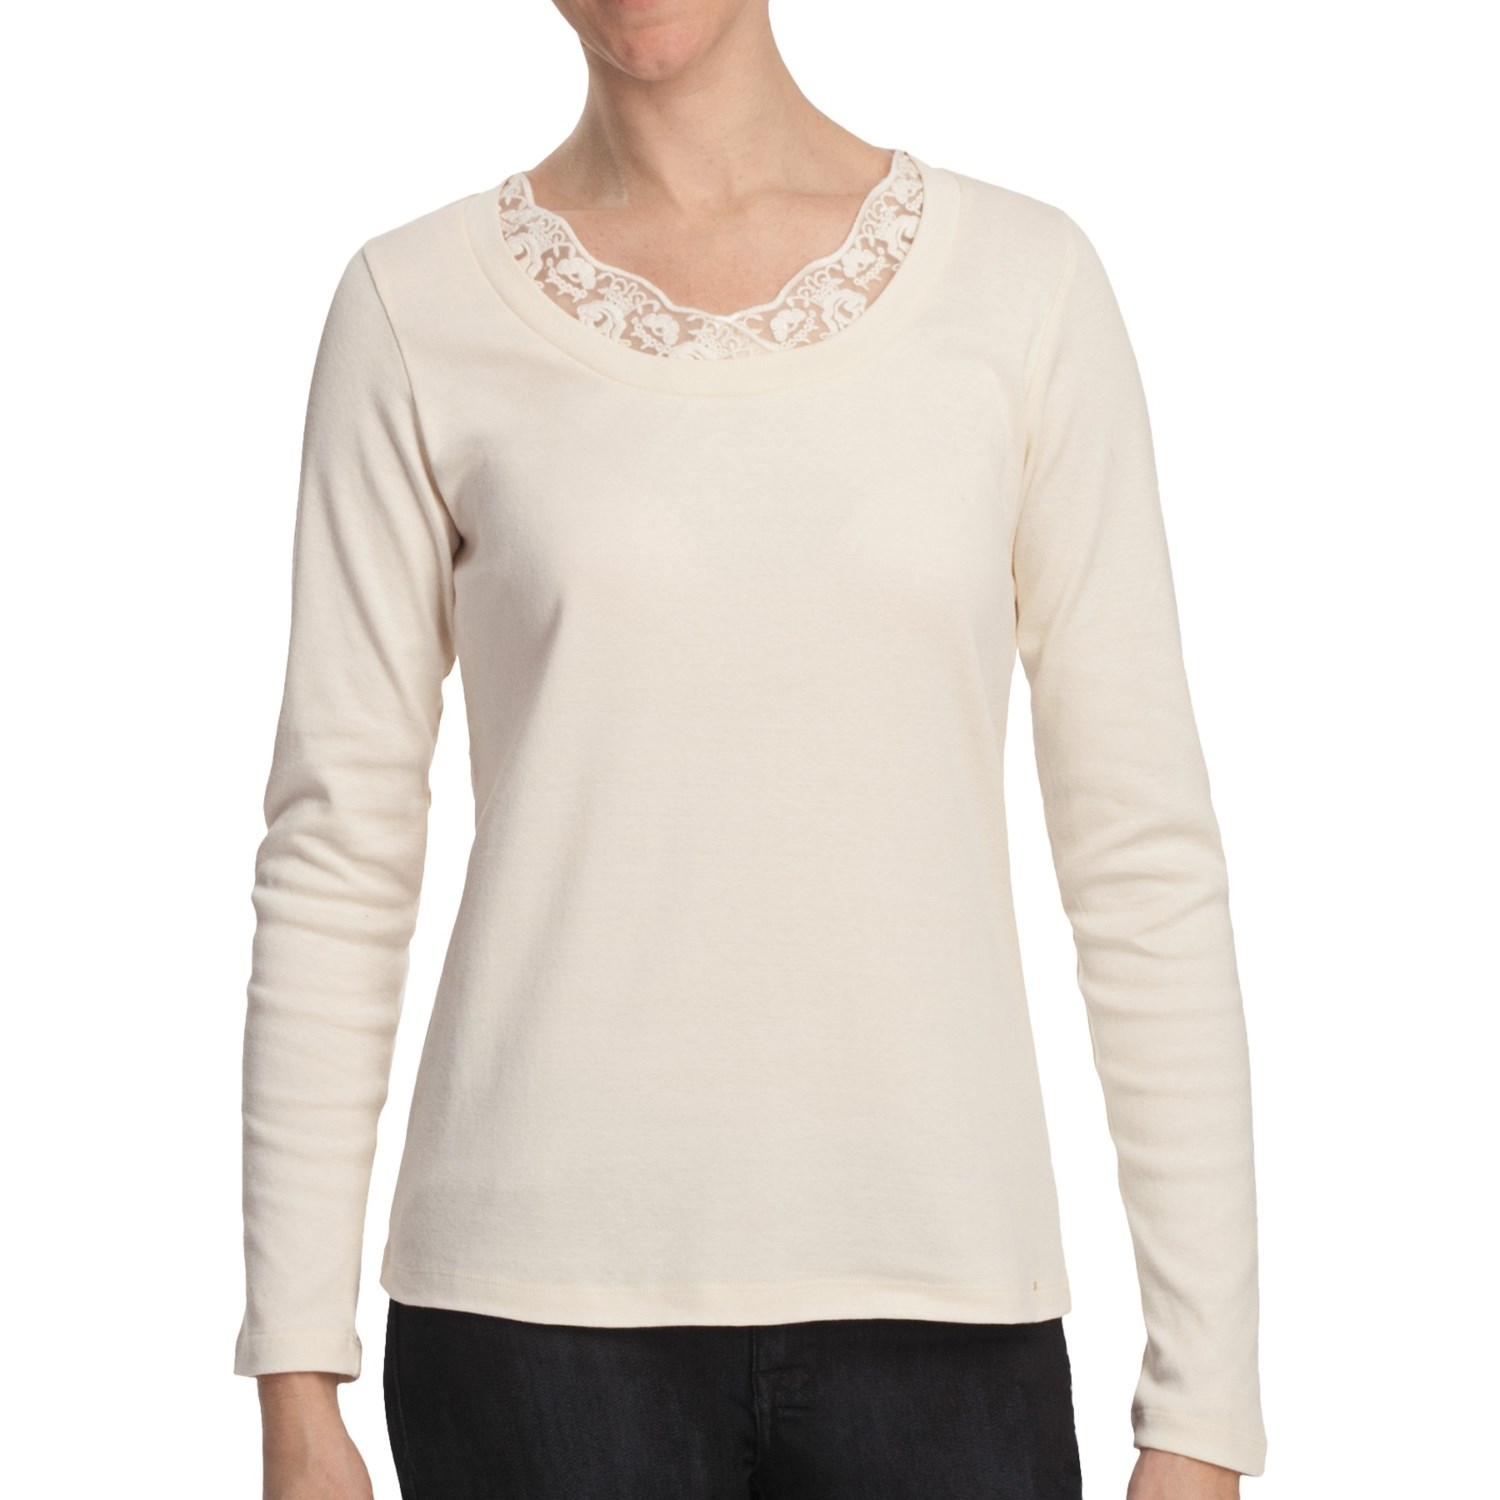 Scoop neck shirt with lace cotton long sleeve for for Scoop neck long sleeve shirt